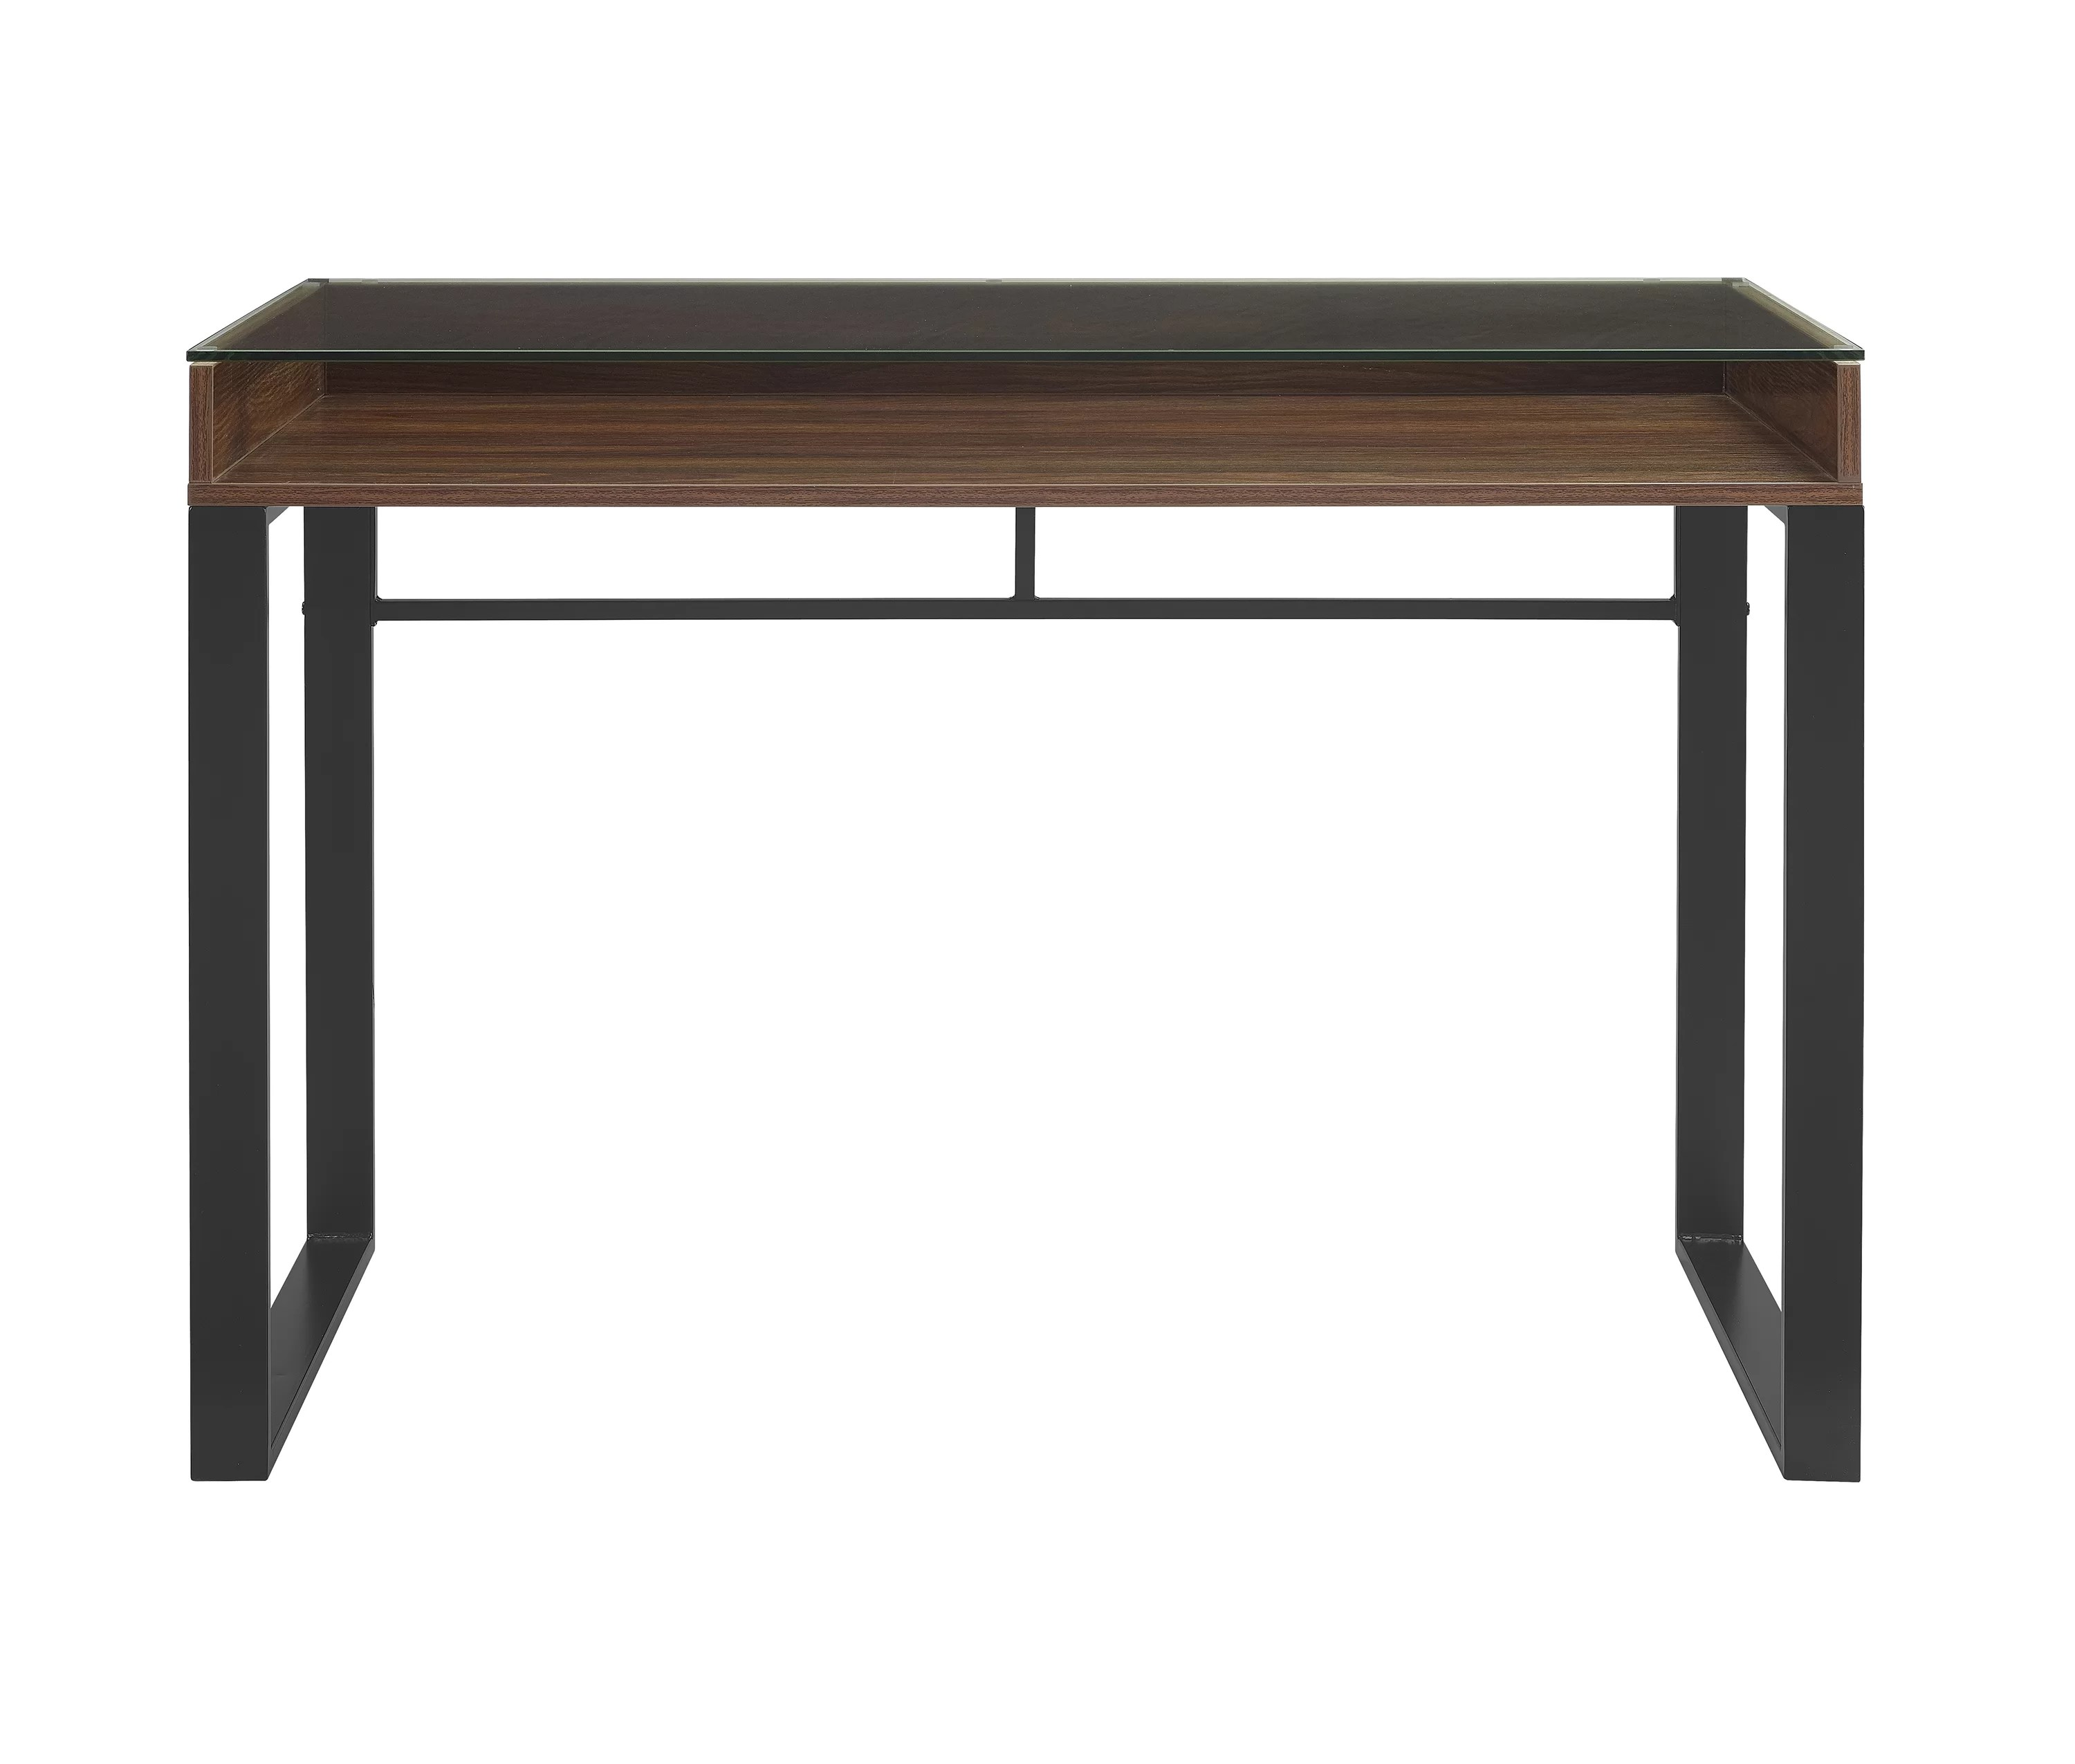 Urban Sofa Barneveld Barneveld Glass Writing Desk Reviews Allmodern